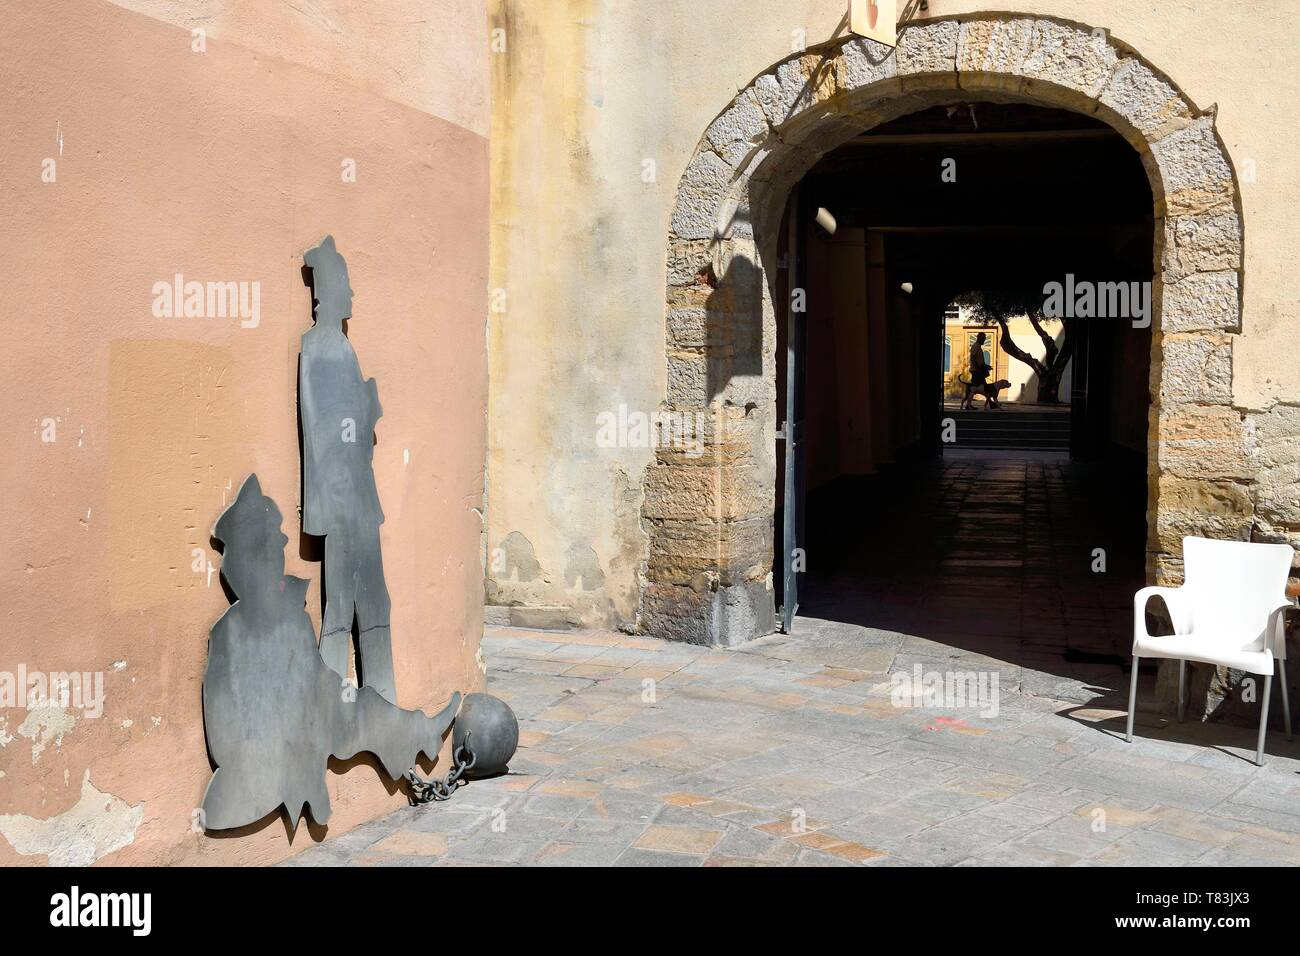 France, Var, Toulon, little Chicago district, sculpture representing convicts at the exit of the passage Baboulene - Stock Image